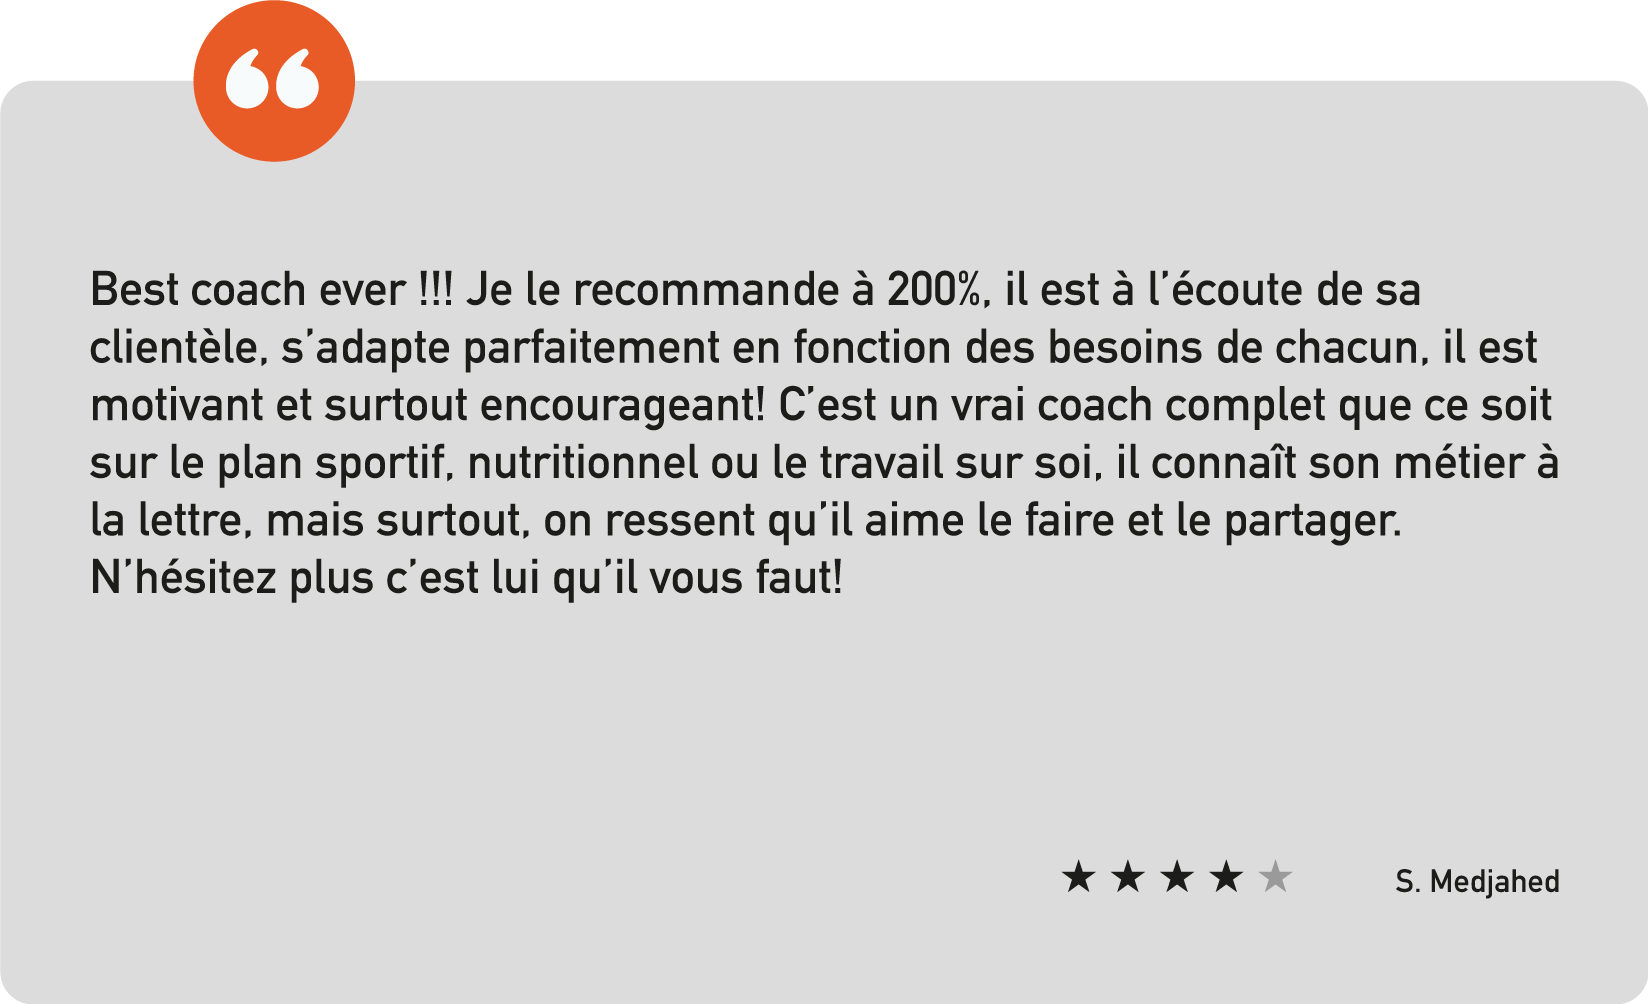 Yvan_Denis_Personal_Trainer_Testimonial_S.Medjahed.png